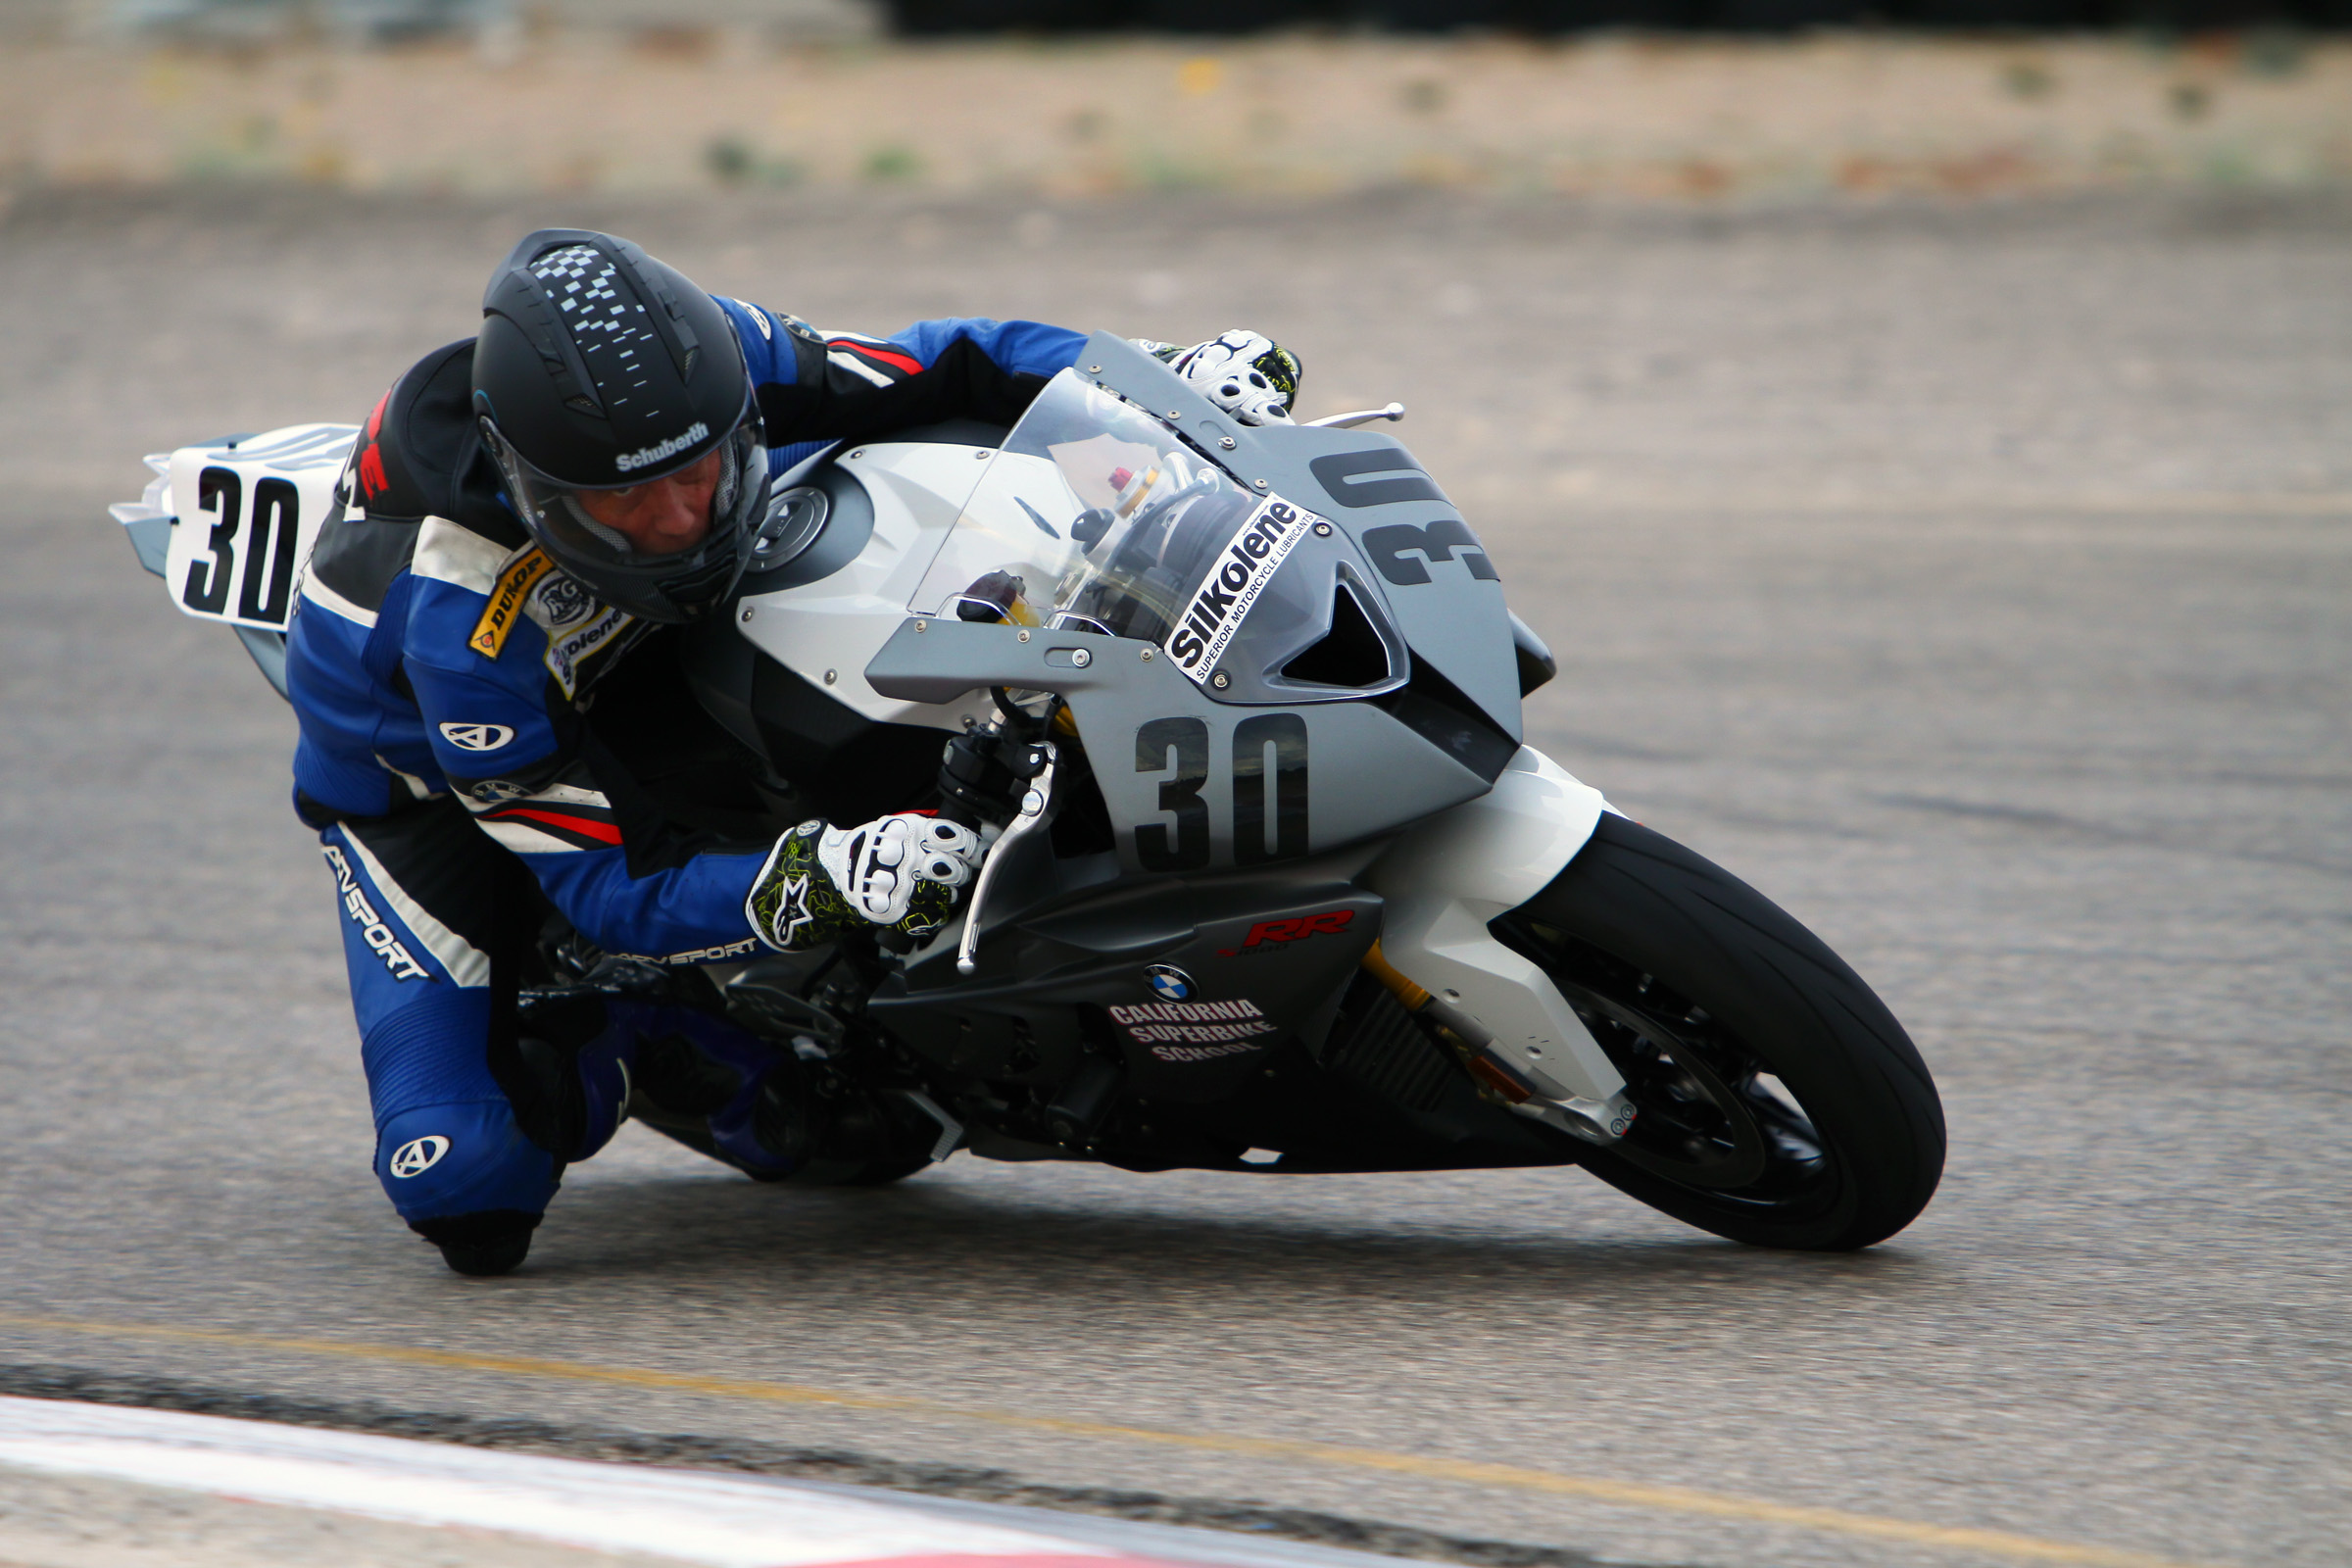 Keith Code dragging a knee in the SR1